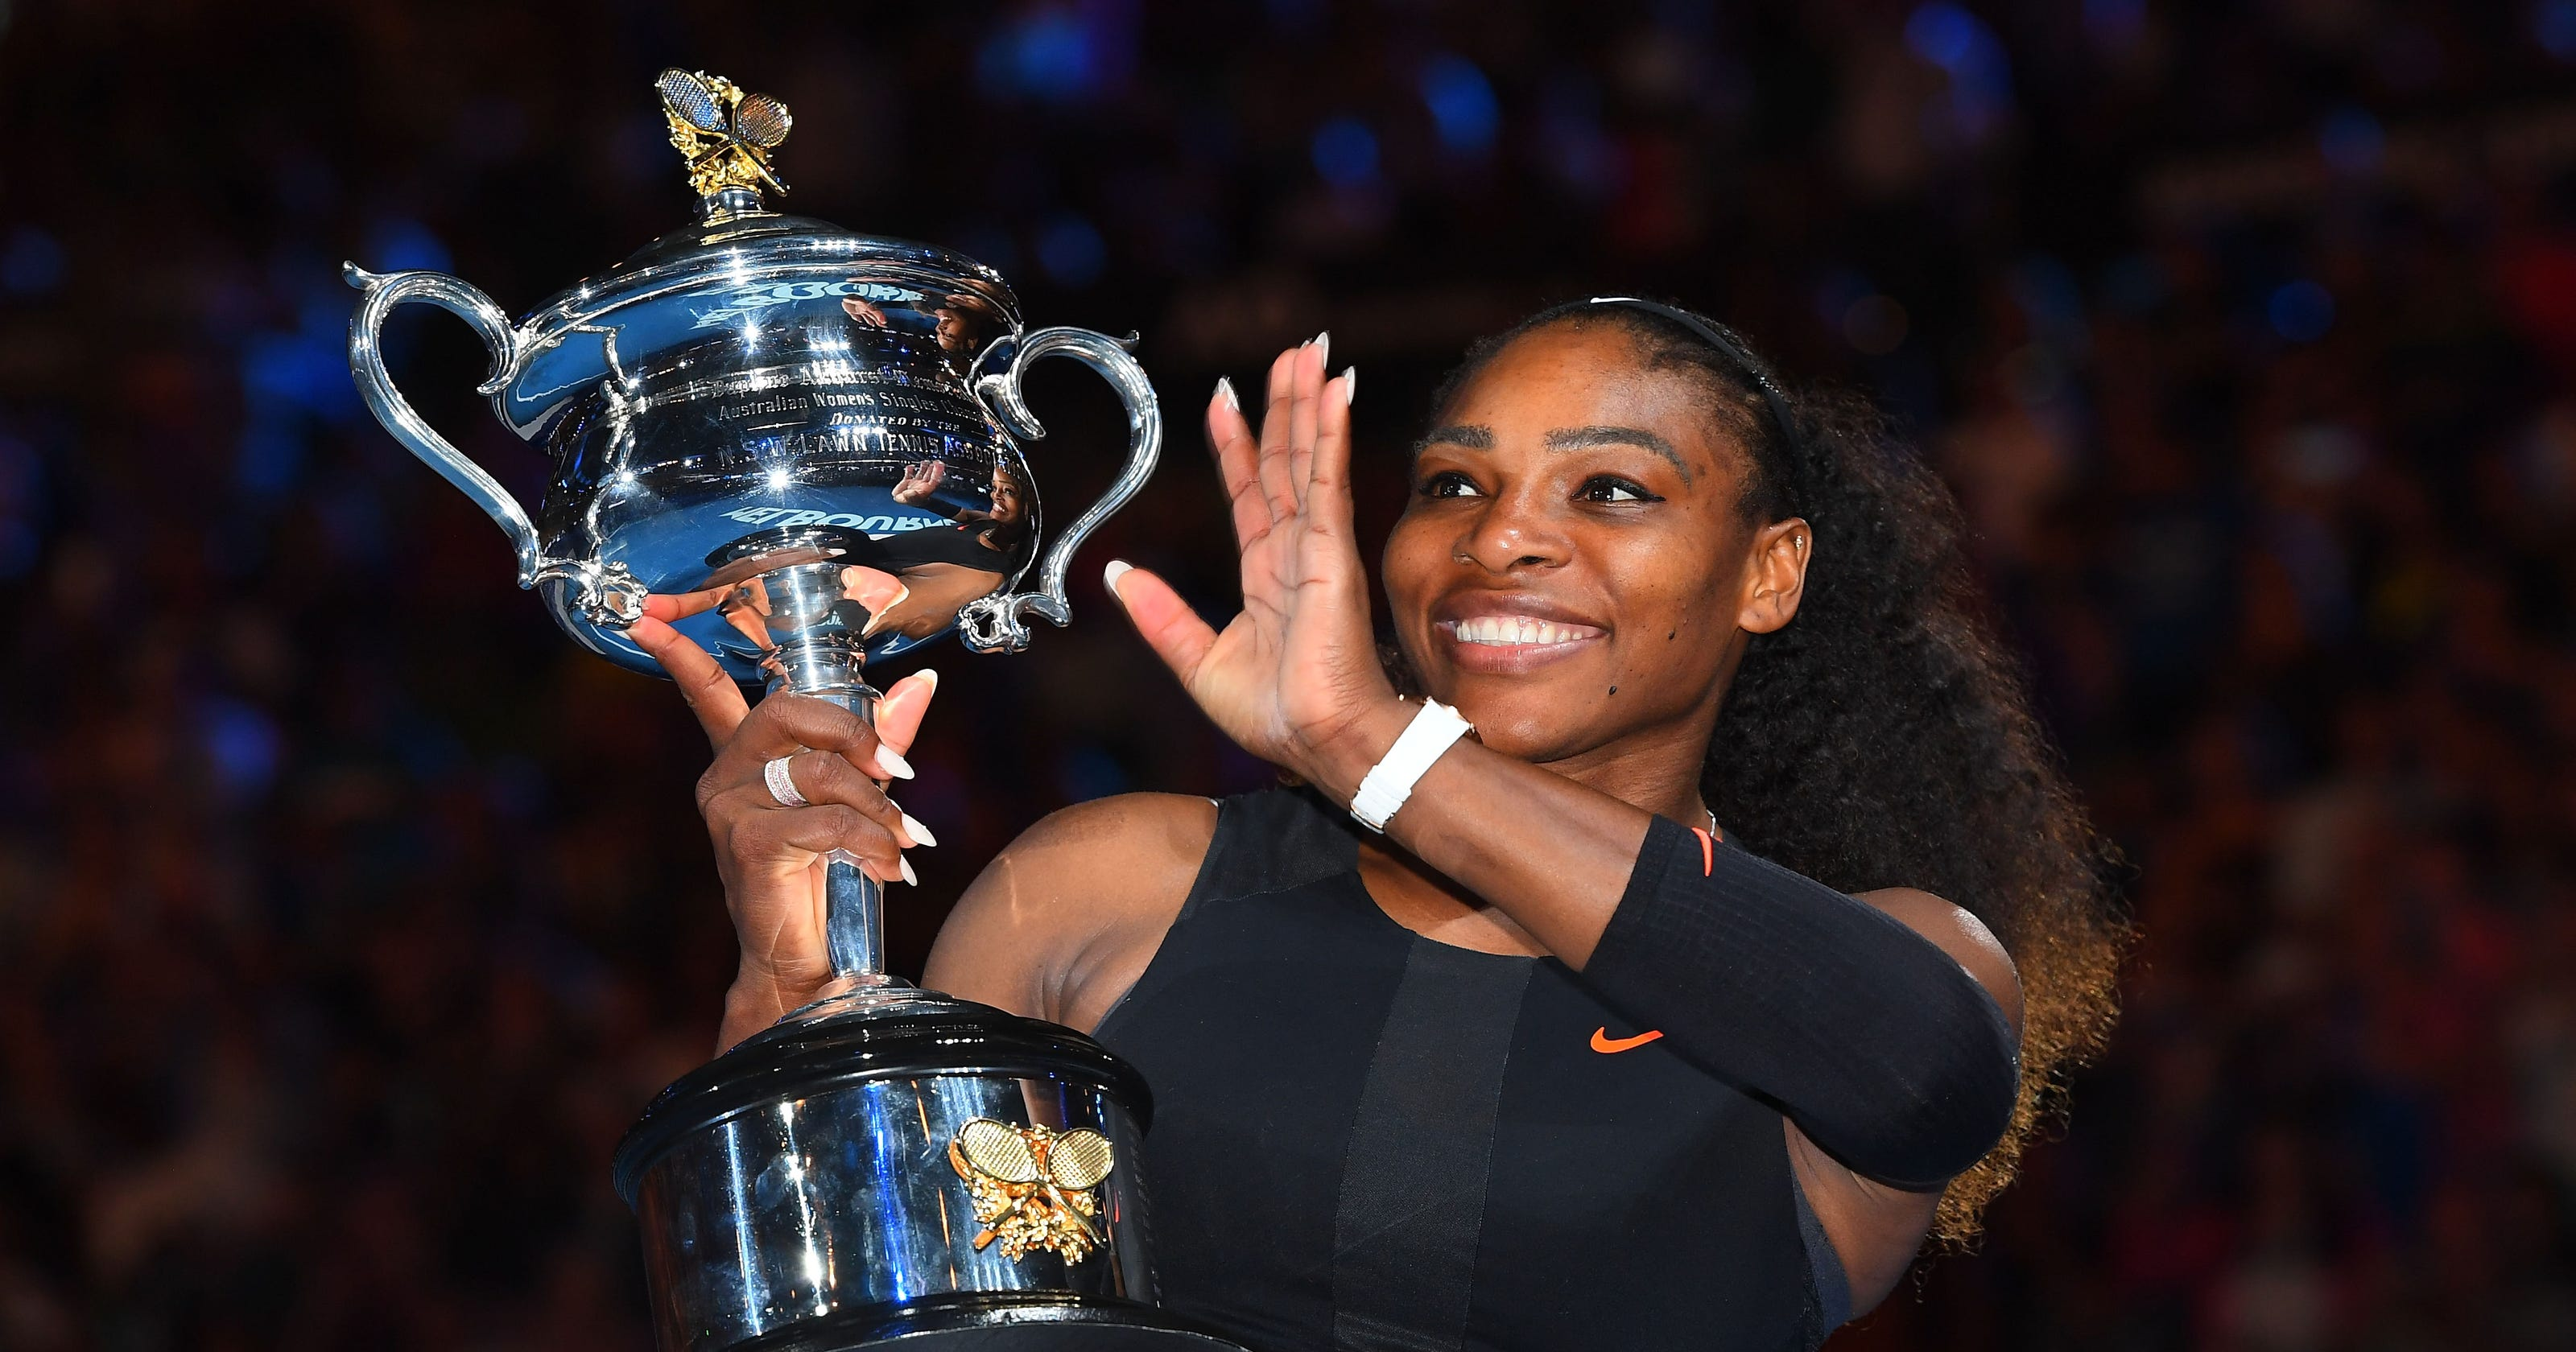 Serena Williams beats sister Venus to win Australian Open